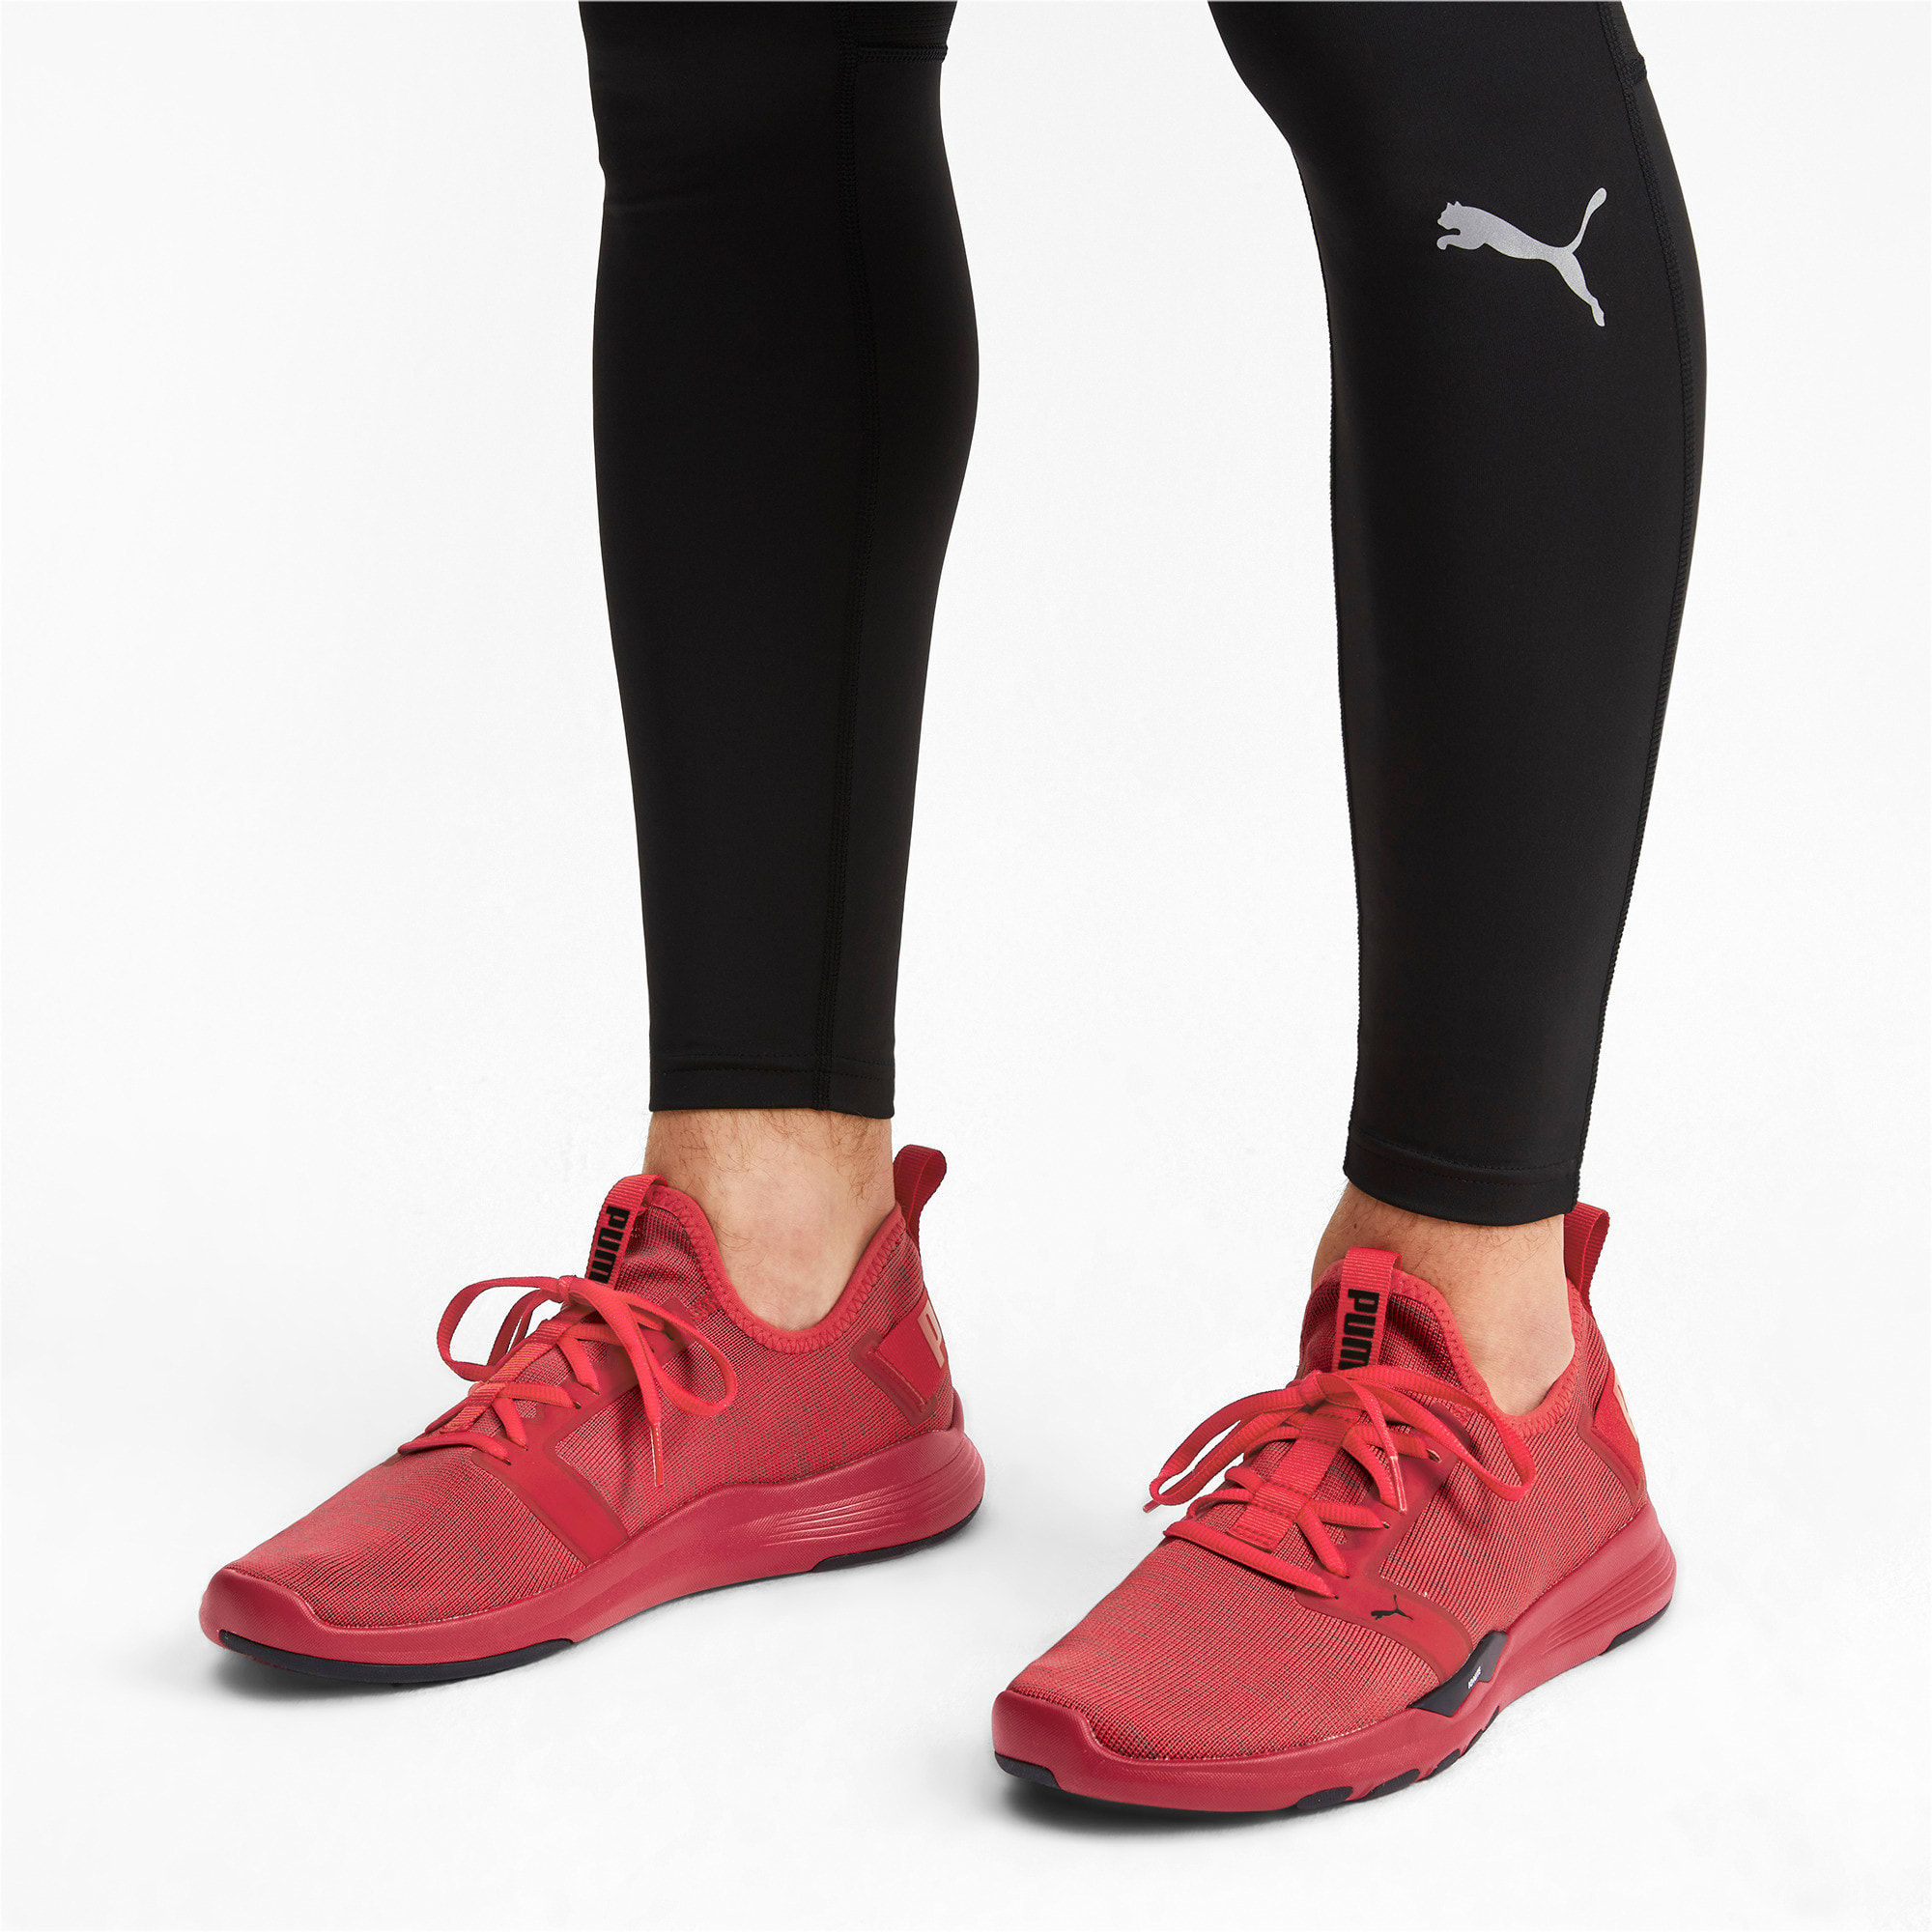 Thumbnail 4 of IGNITE Contender Knit Men's Running Shoes, Ribbon Red-Puma Black, medium-IND